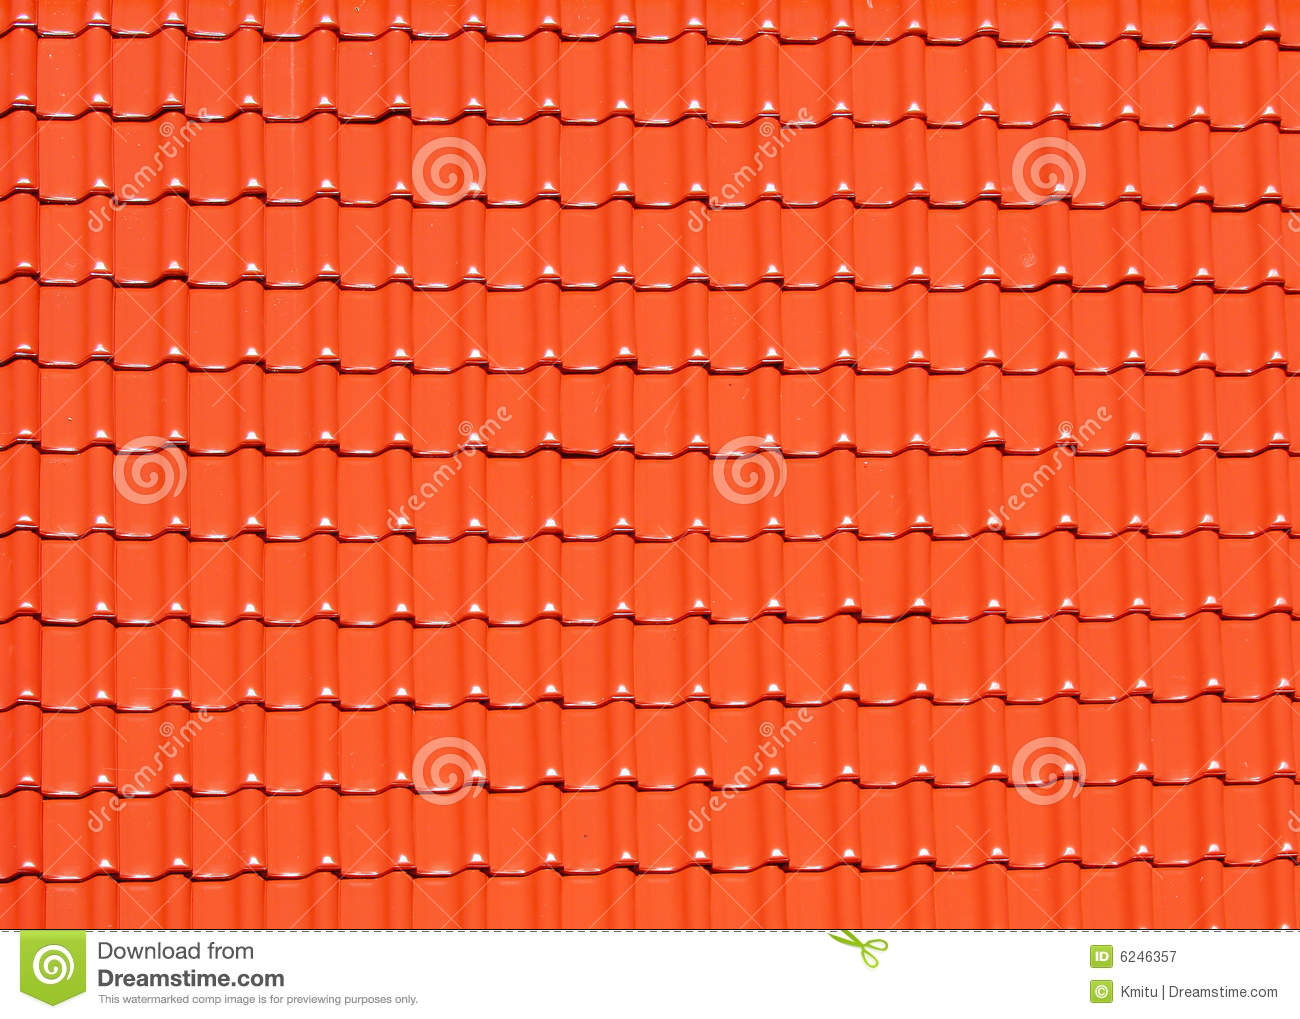 Red Roof Tiles Background Royalty Free Stock Photography